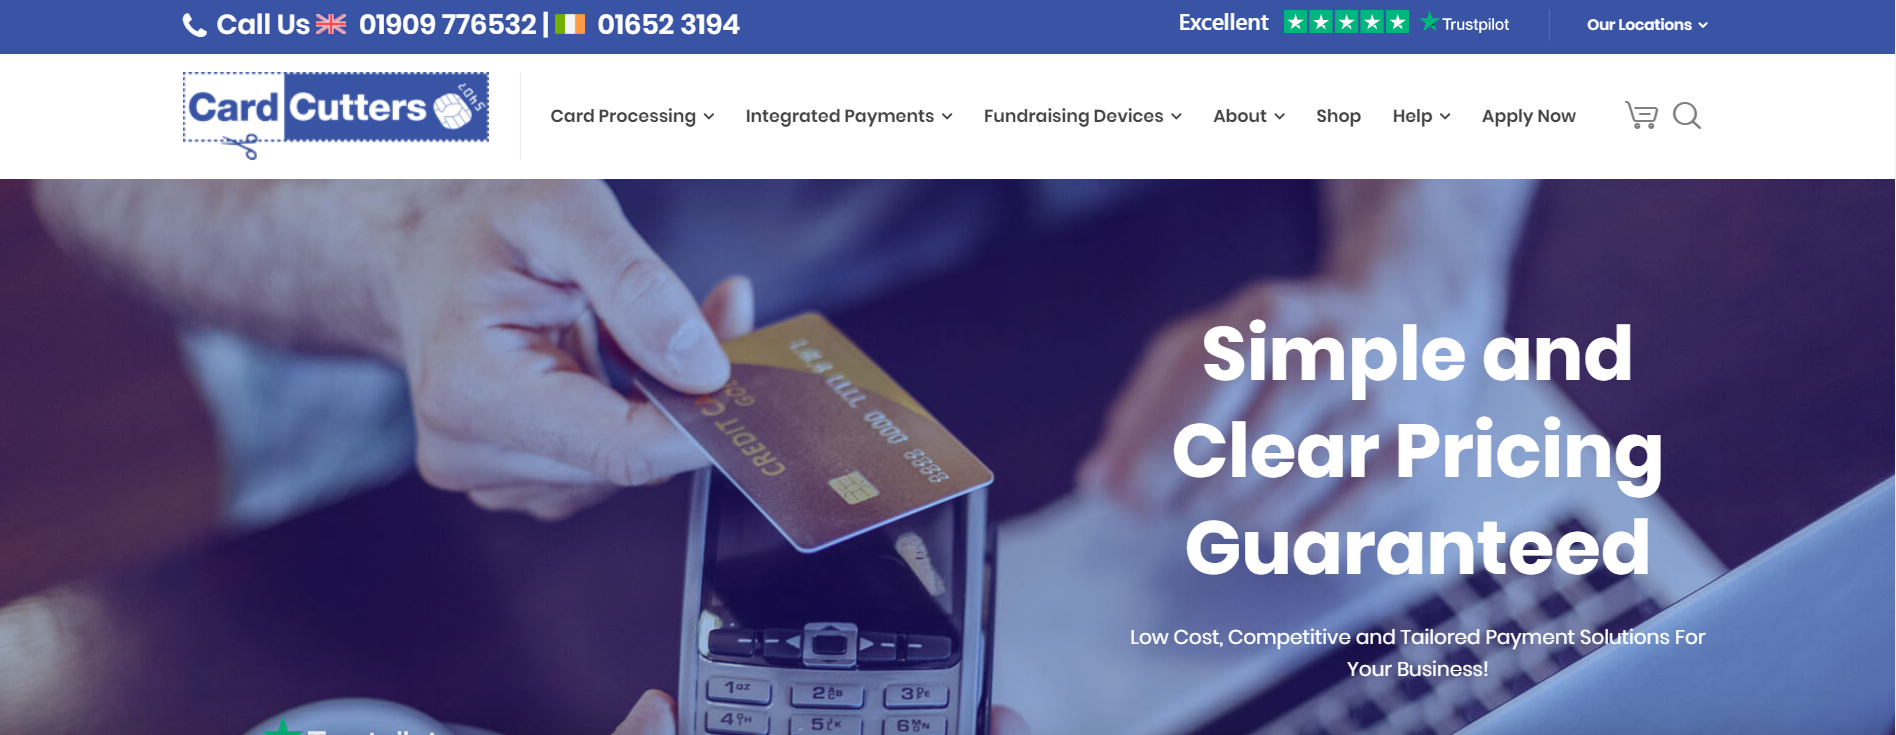 Card Machine Providers For Small Businesses 30